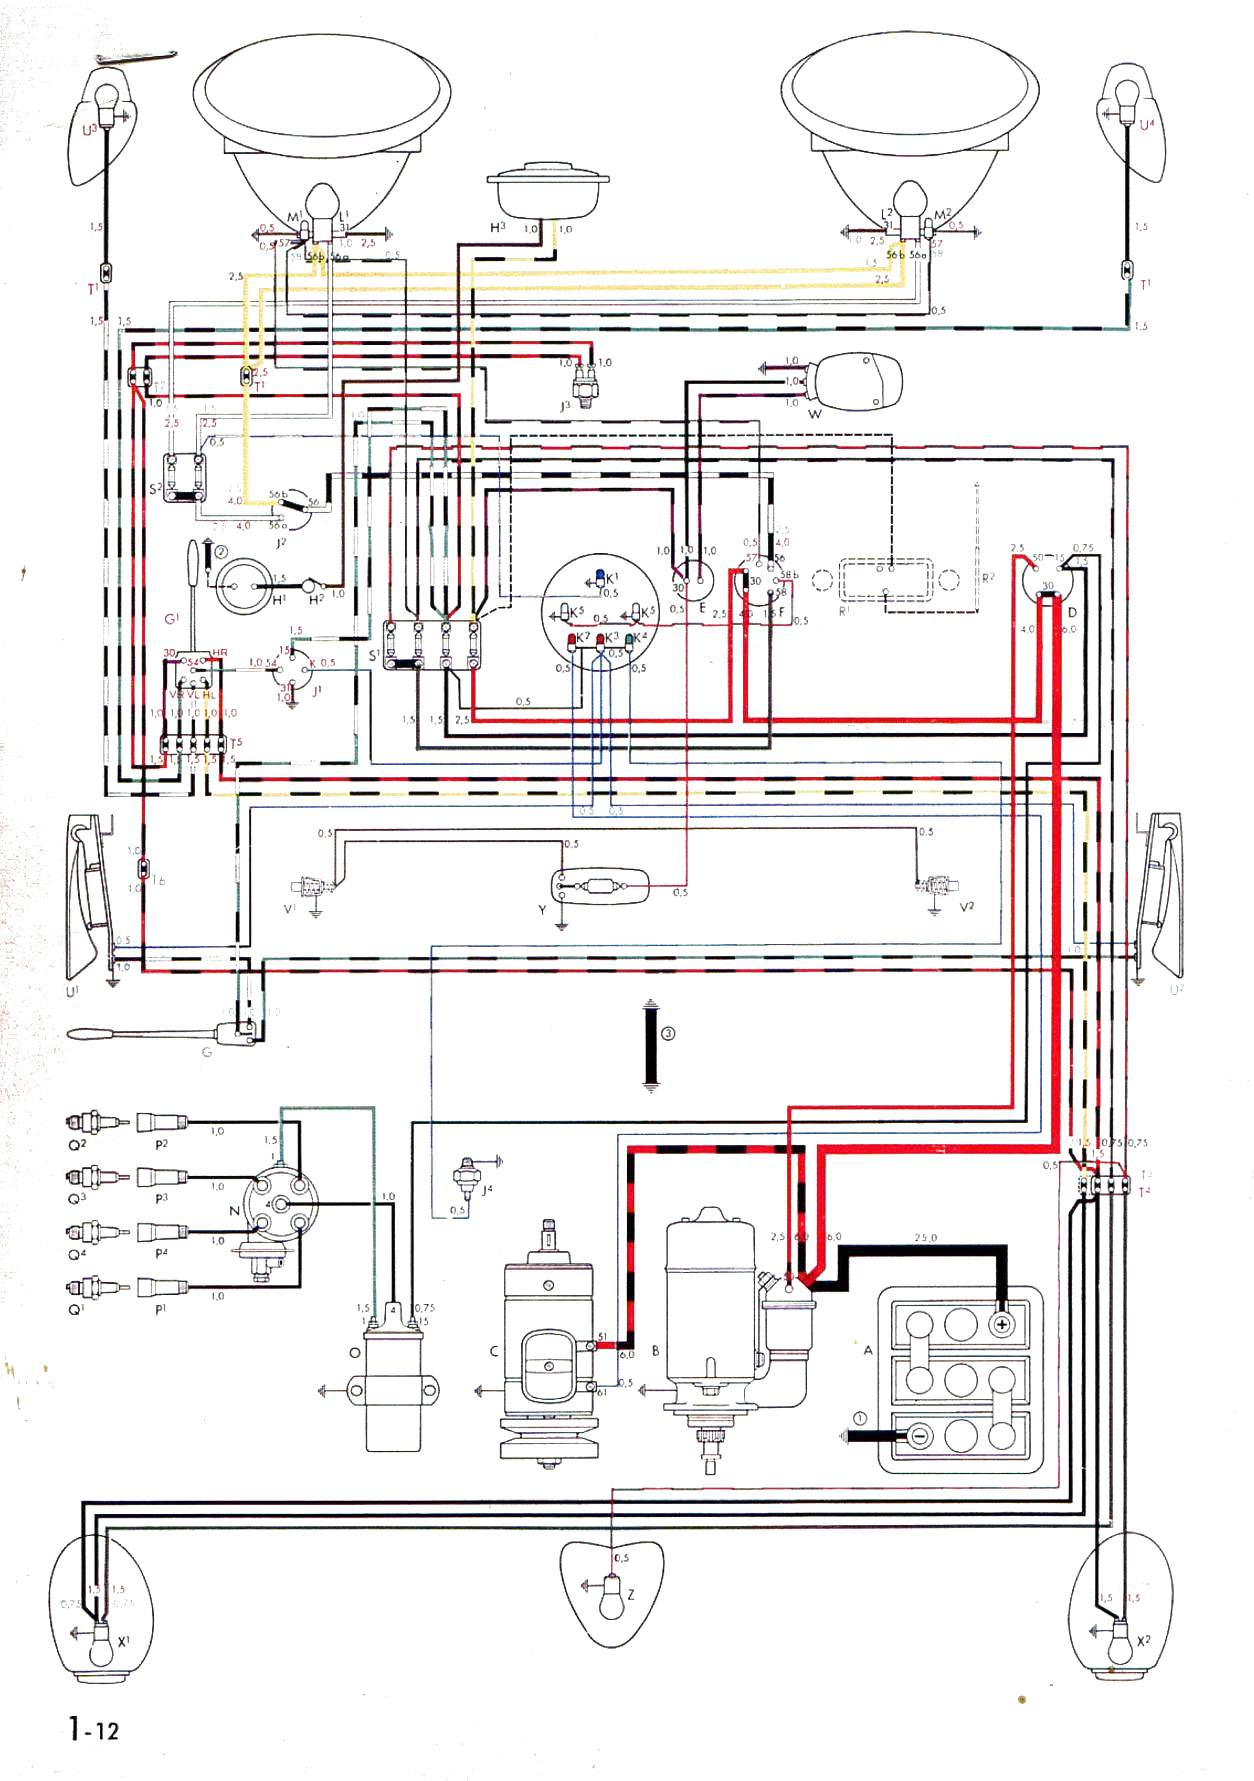 Vw Bus And Other Wiring Diagrams 4 Pin Diagram For Light Reading Bug